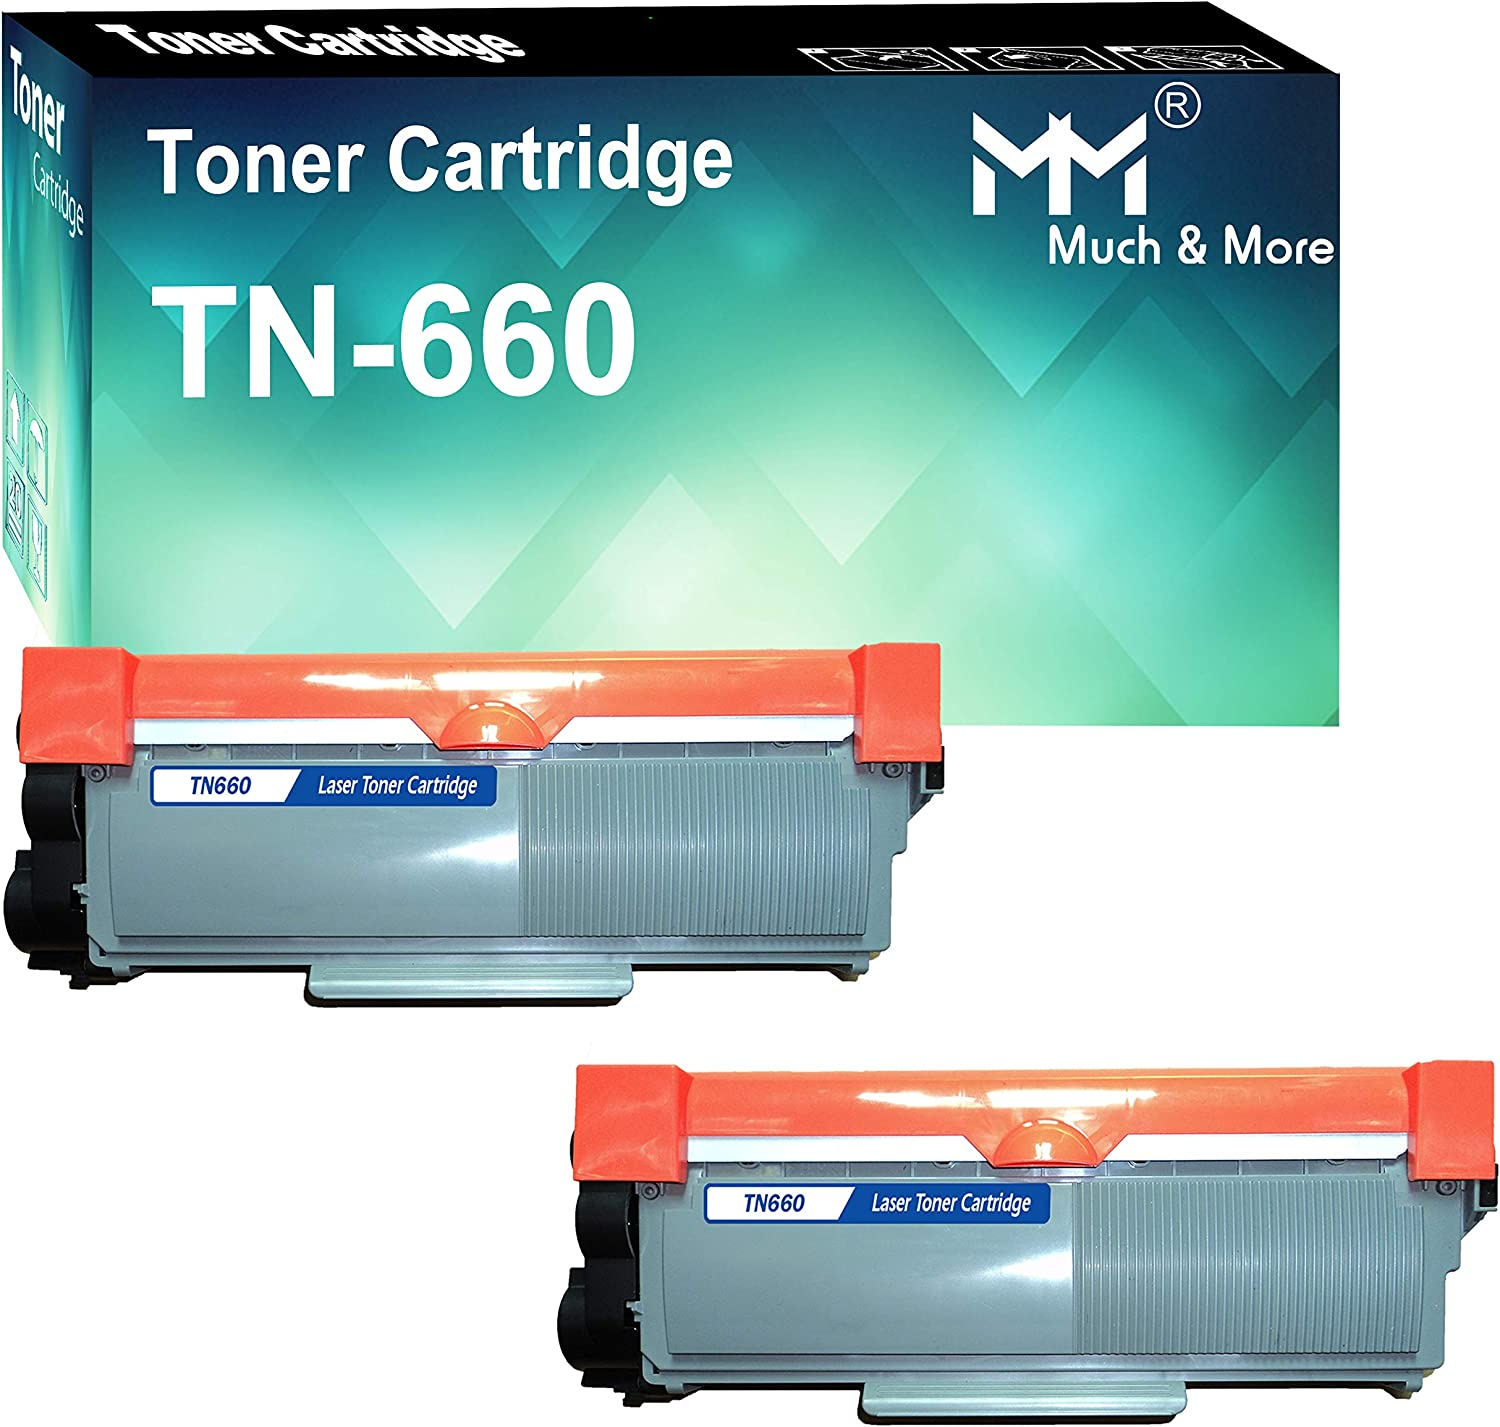 Much&More (2-Pack) Compatible Toner Cartridge Replacement for Brother TN660 TN-660 Used for Brother HL-L2300D L2365DW L2340DW L2320D L2360DW DCP-L2520DW L2540DW MFC-L2740DW